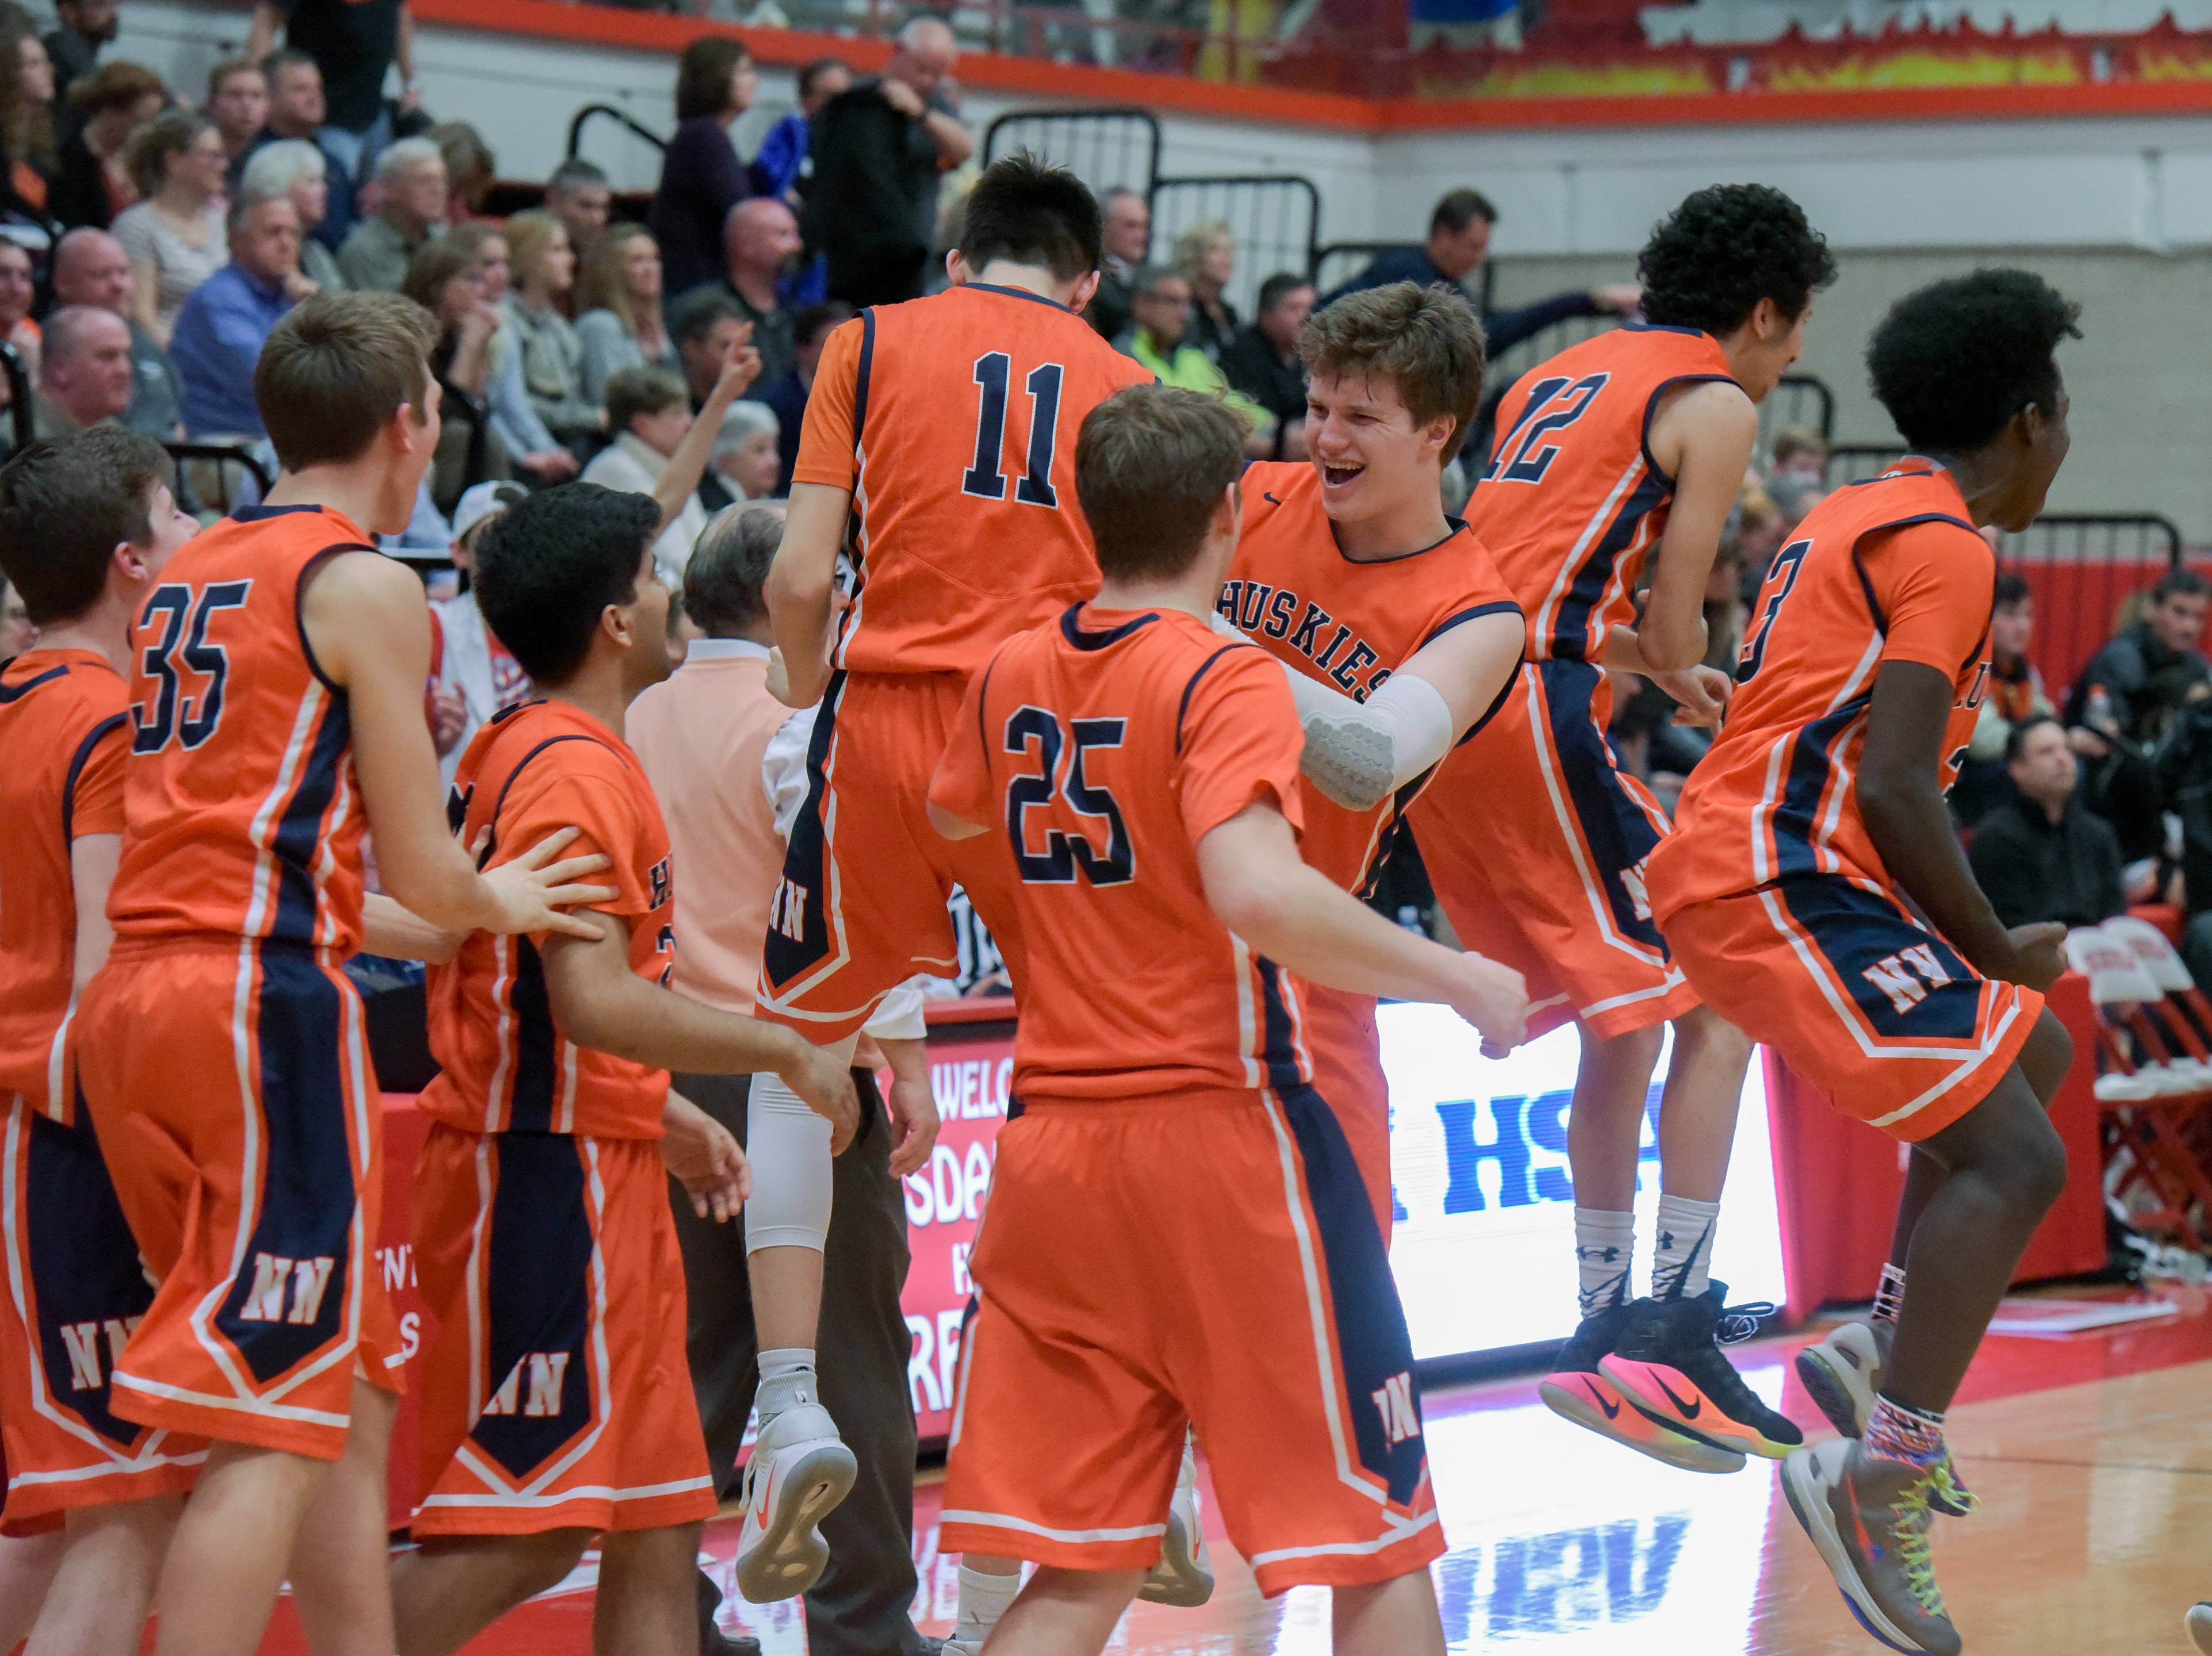 Unusual strategy works for Naperville North